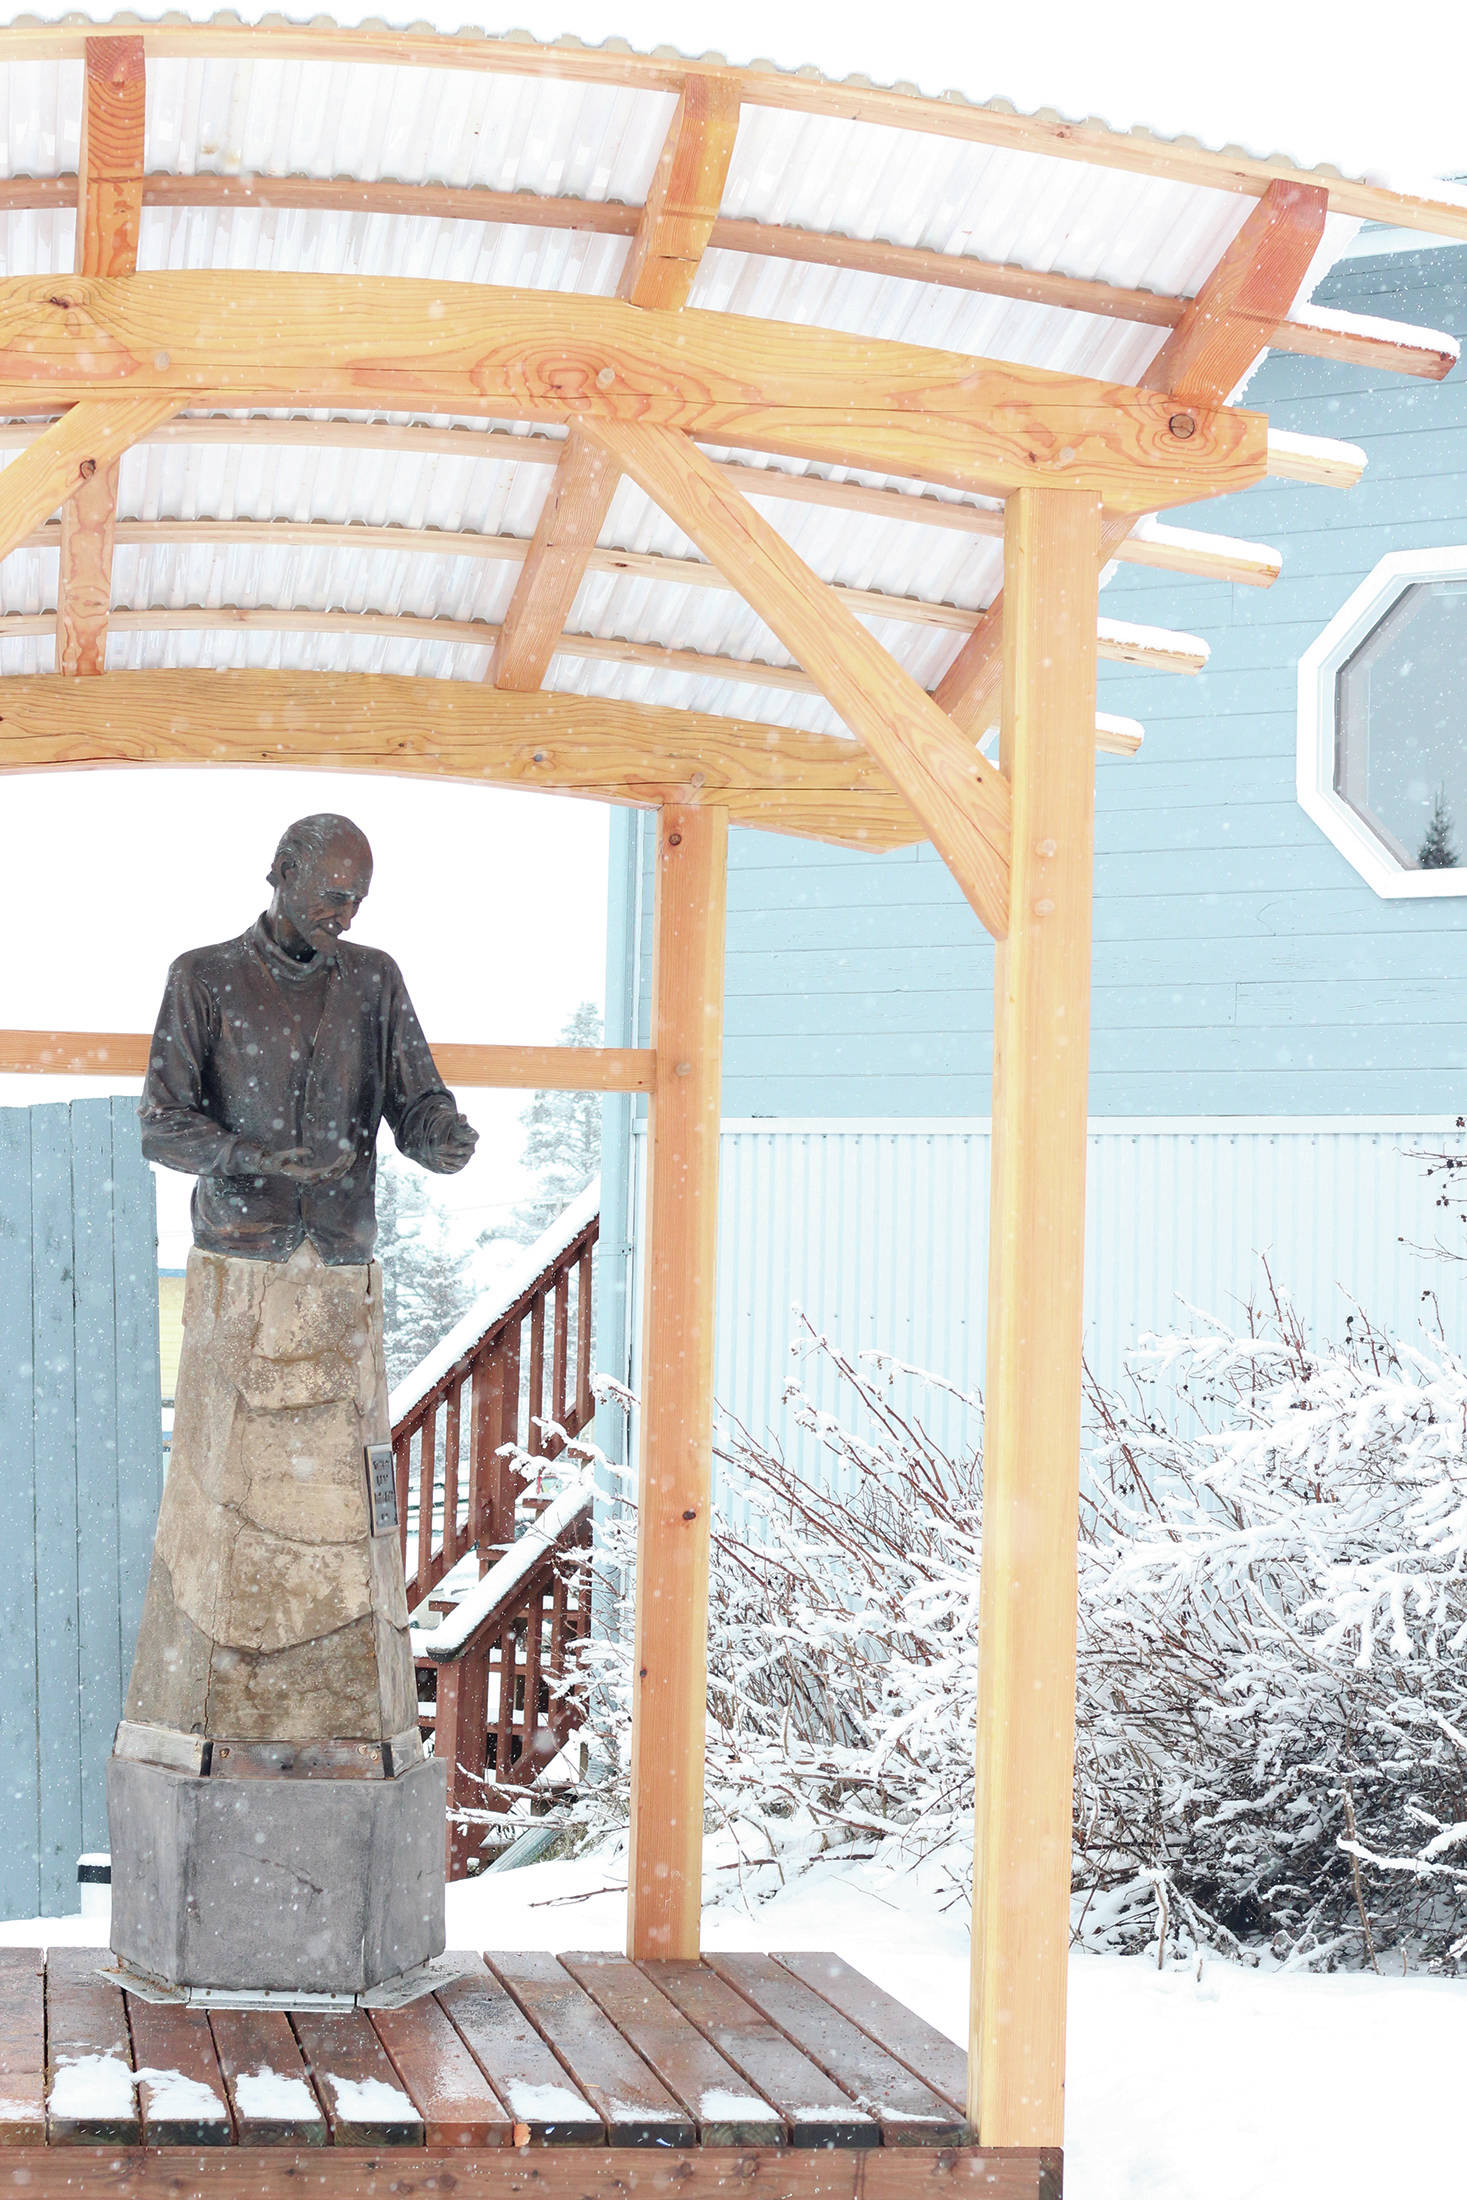 A statue of Brother Asaiah rests under a protective wooden structure on Thursday, Feb. 18, 2021 outside KBBI Public Radio in Homer, Alaska. (Photo by Megan Pacer/Homer News)